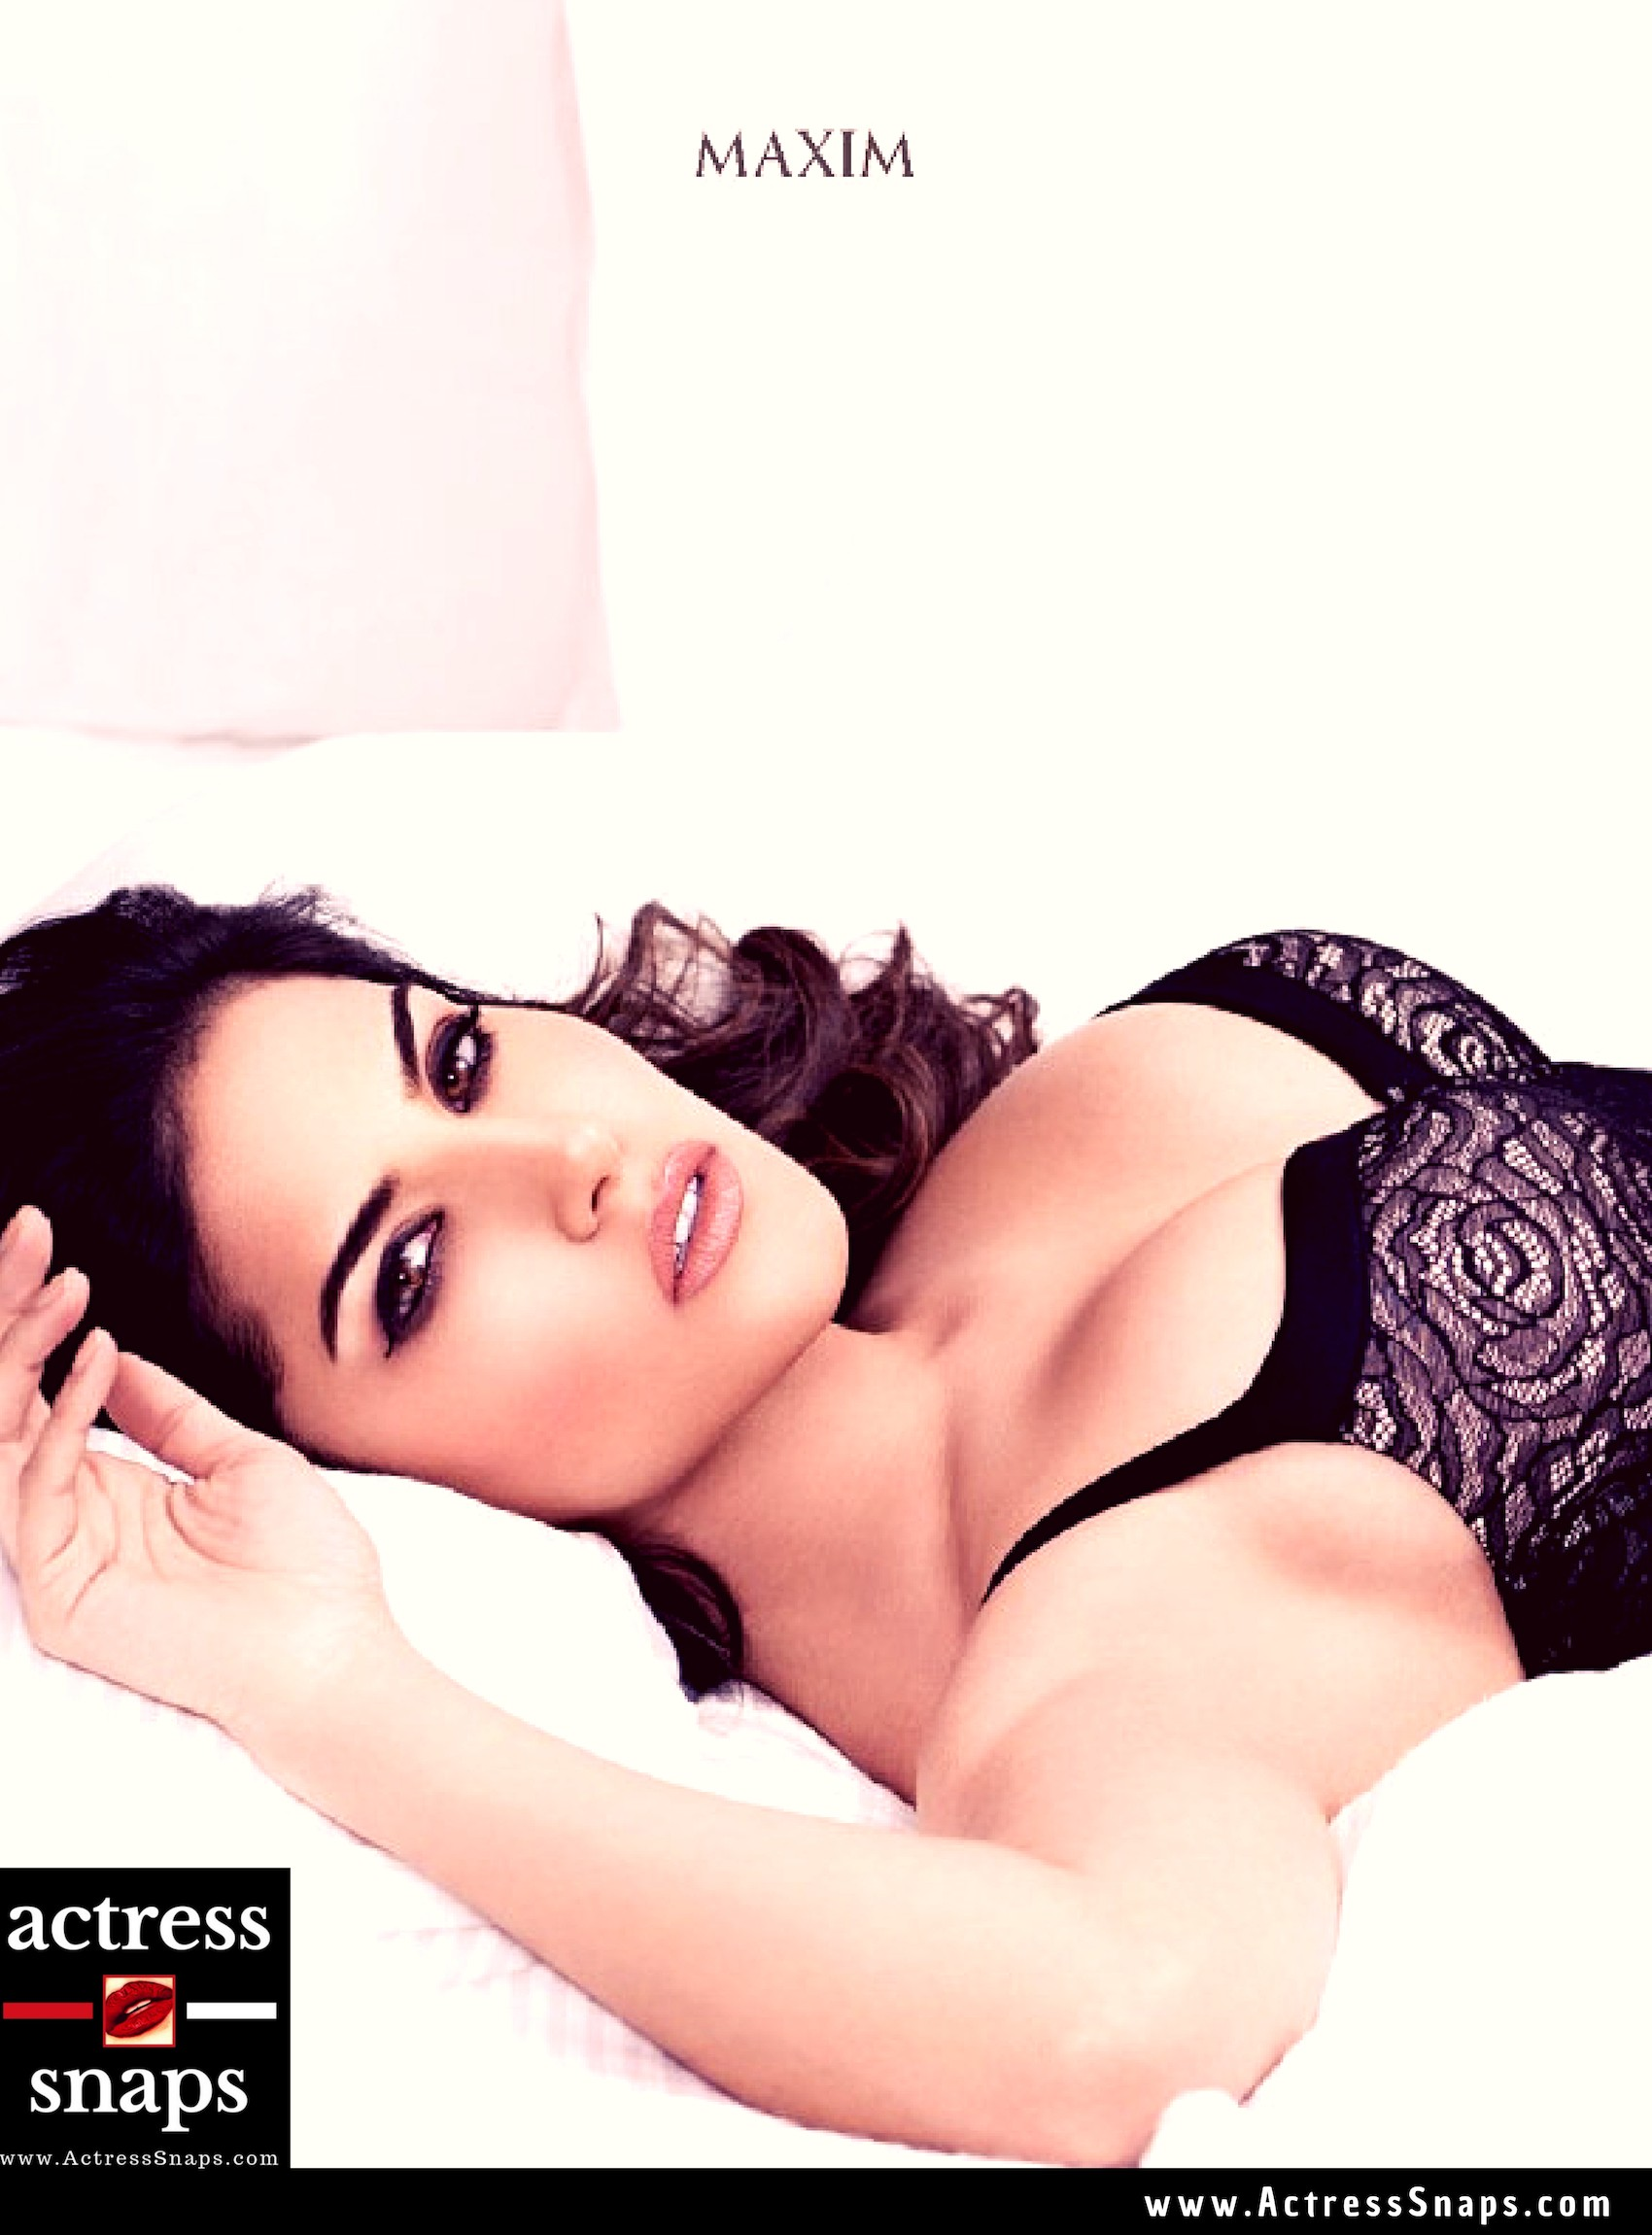 Sunny Leone - Sexy Maxim Magazine Photos - Sexy Actress Pictures | Hot Actress Pictures - ActressSnaps.com